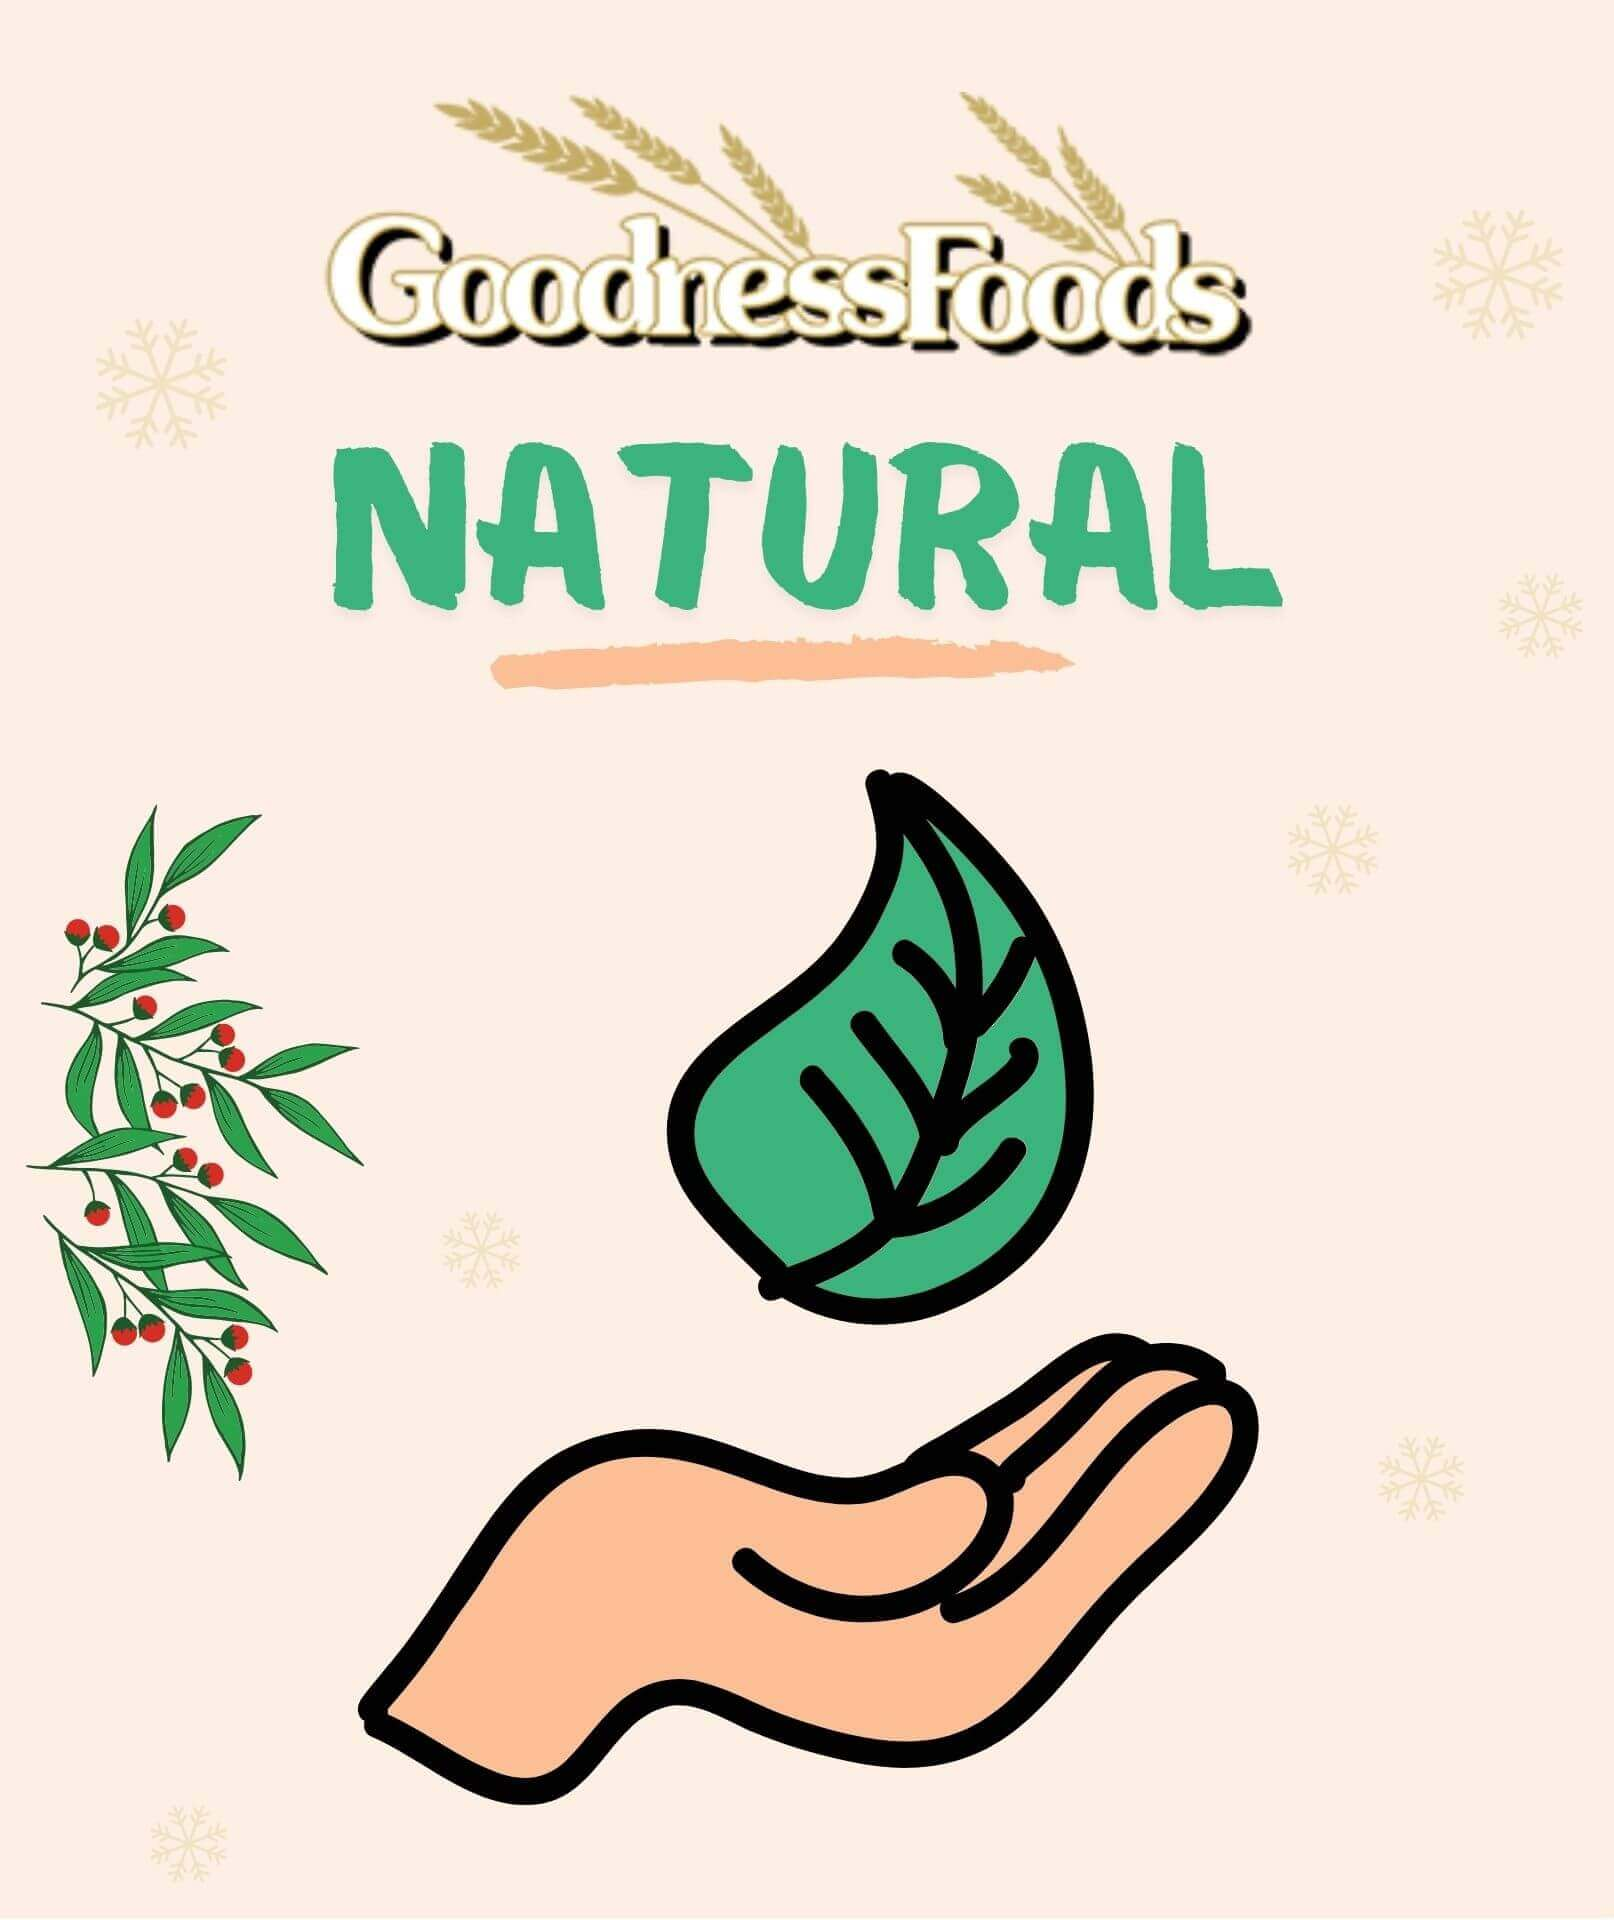 goodness-food-natural-products-1